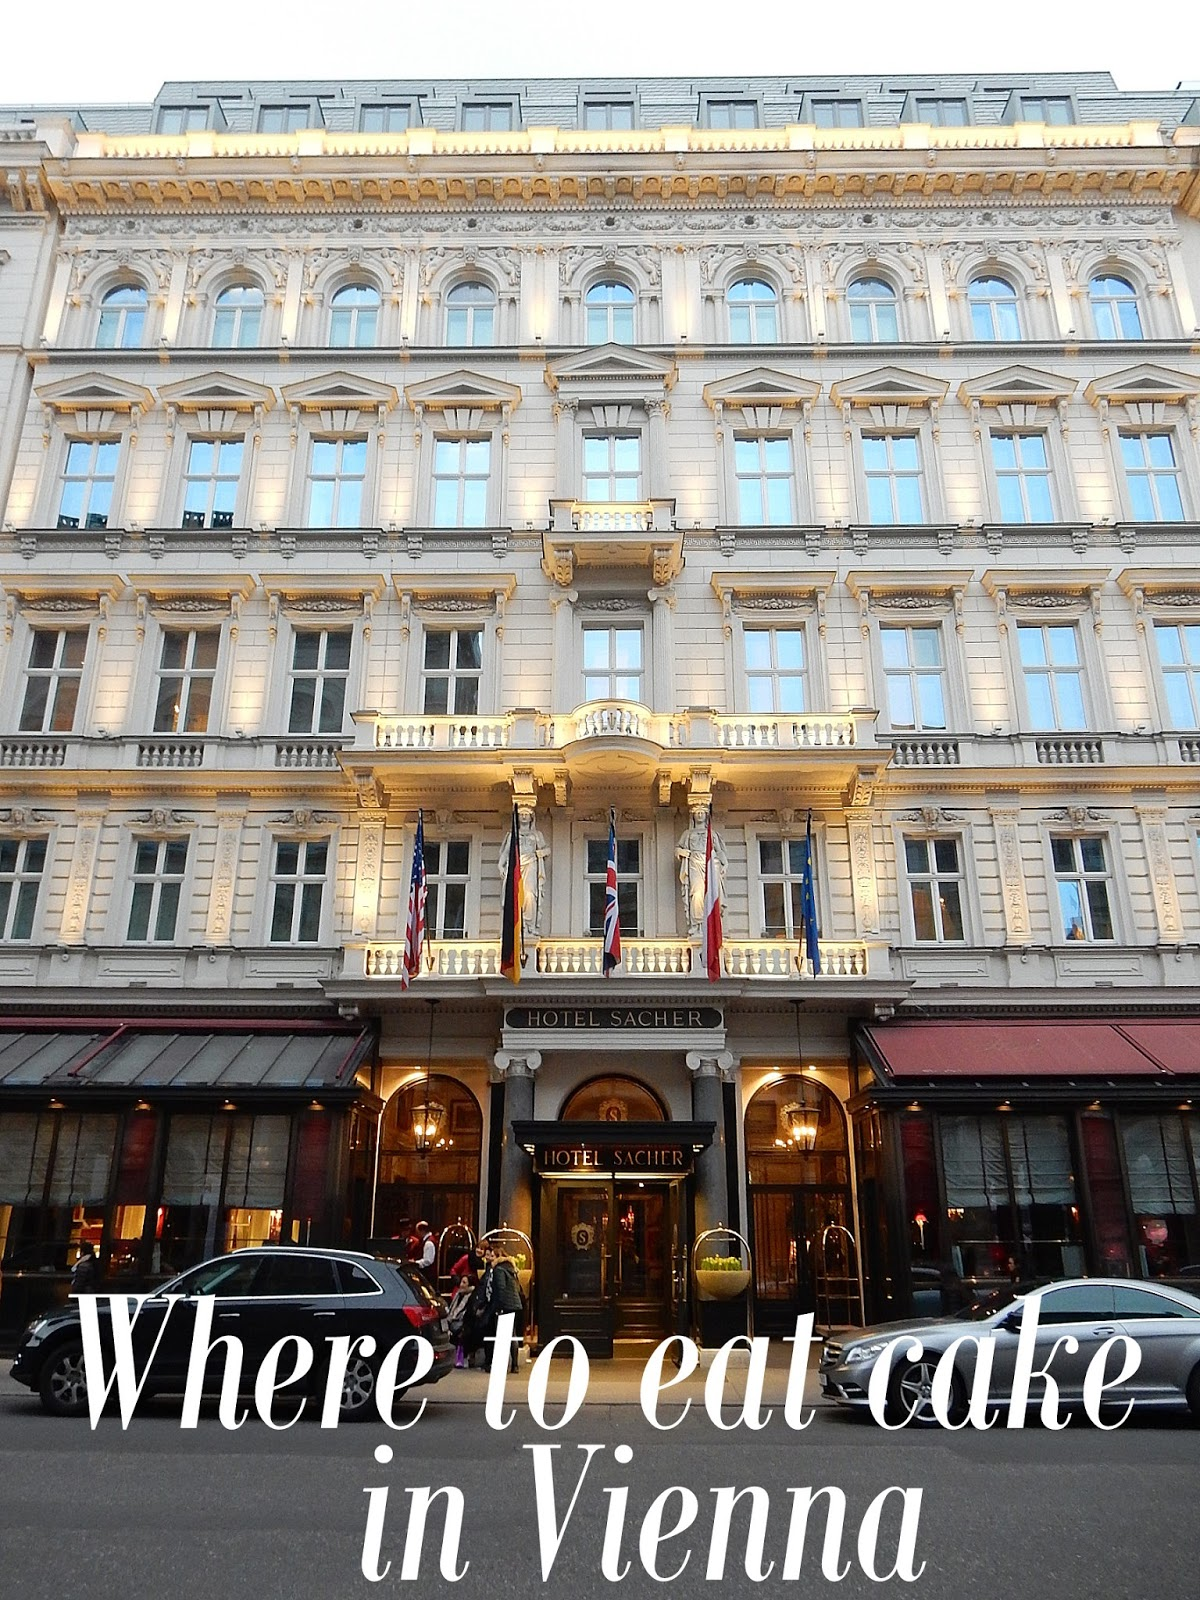 Where to find the best schitznel and cake in Vienna